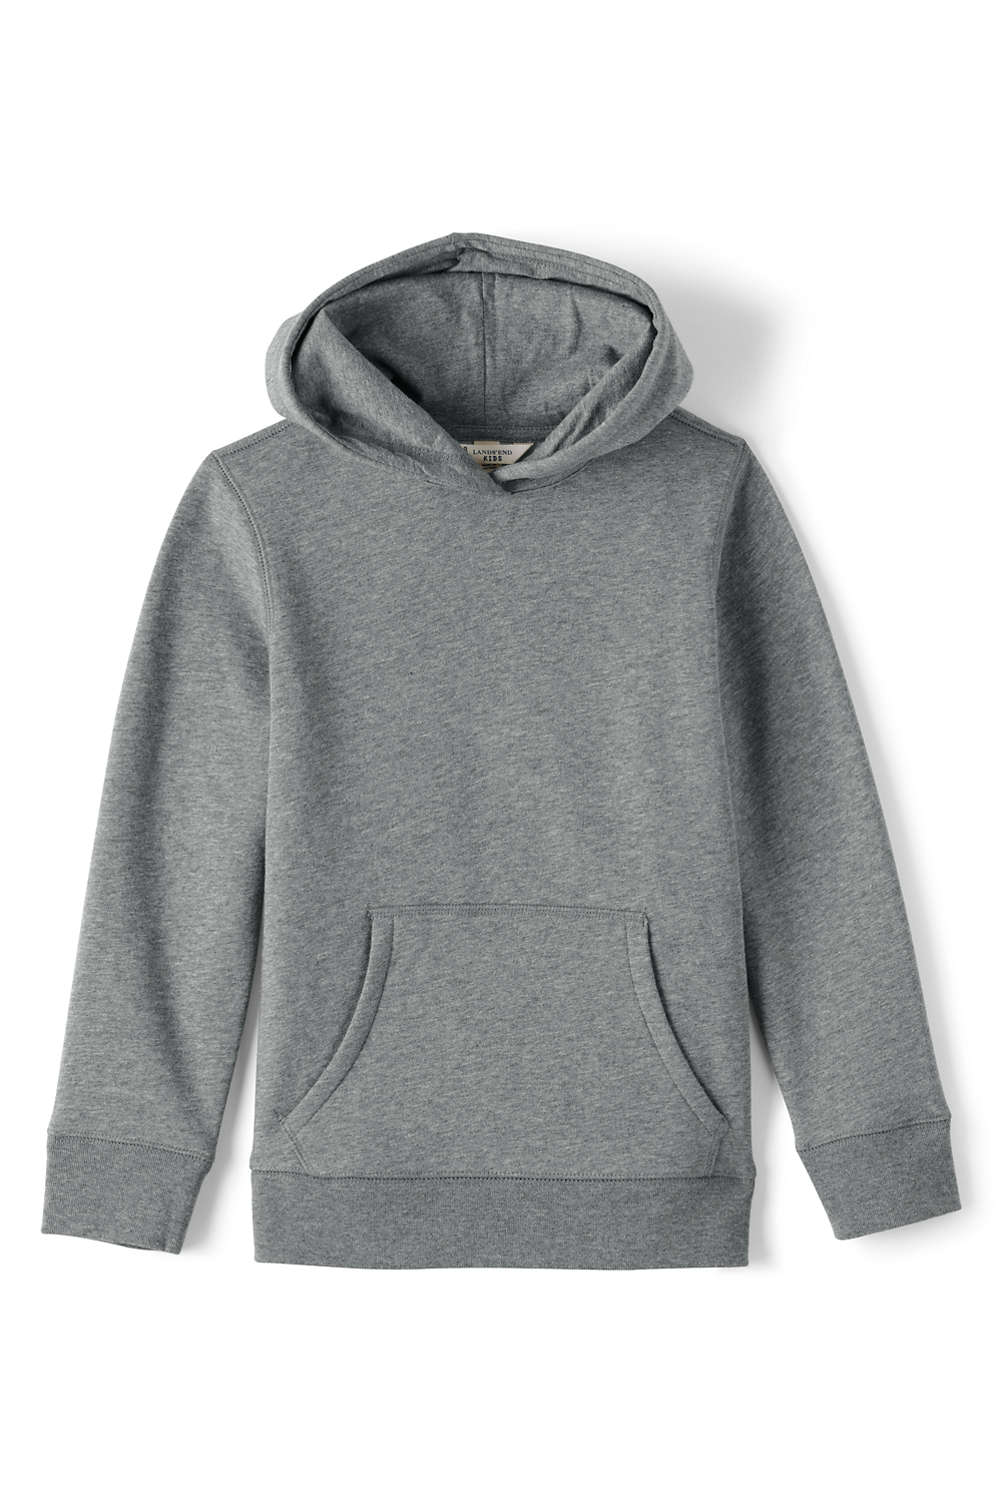 d126601ac42 Girls Hoodie Pullover Sweatshirt from Lands' End